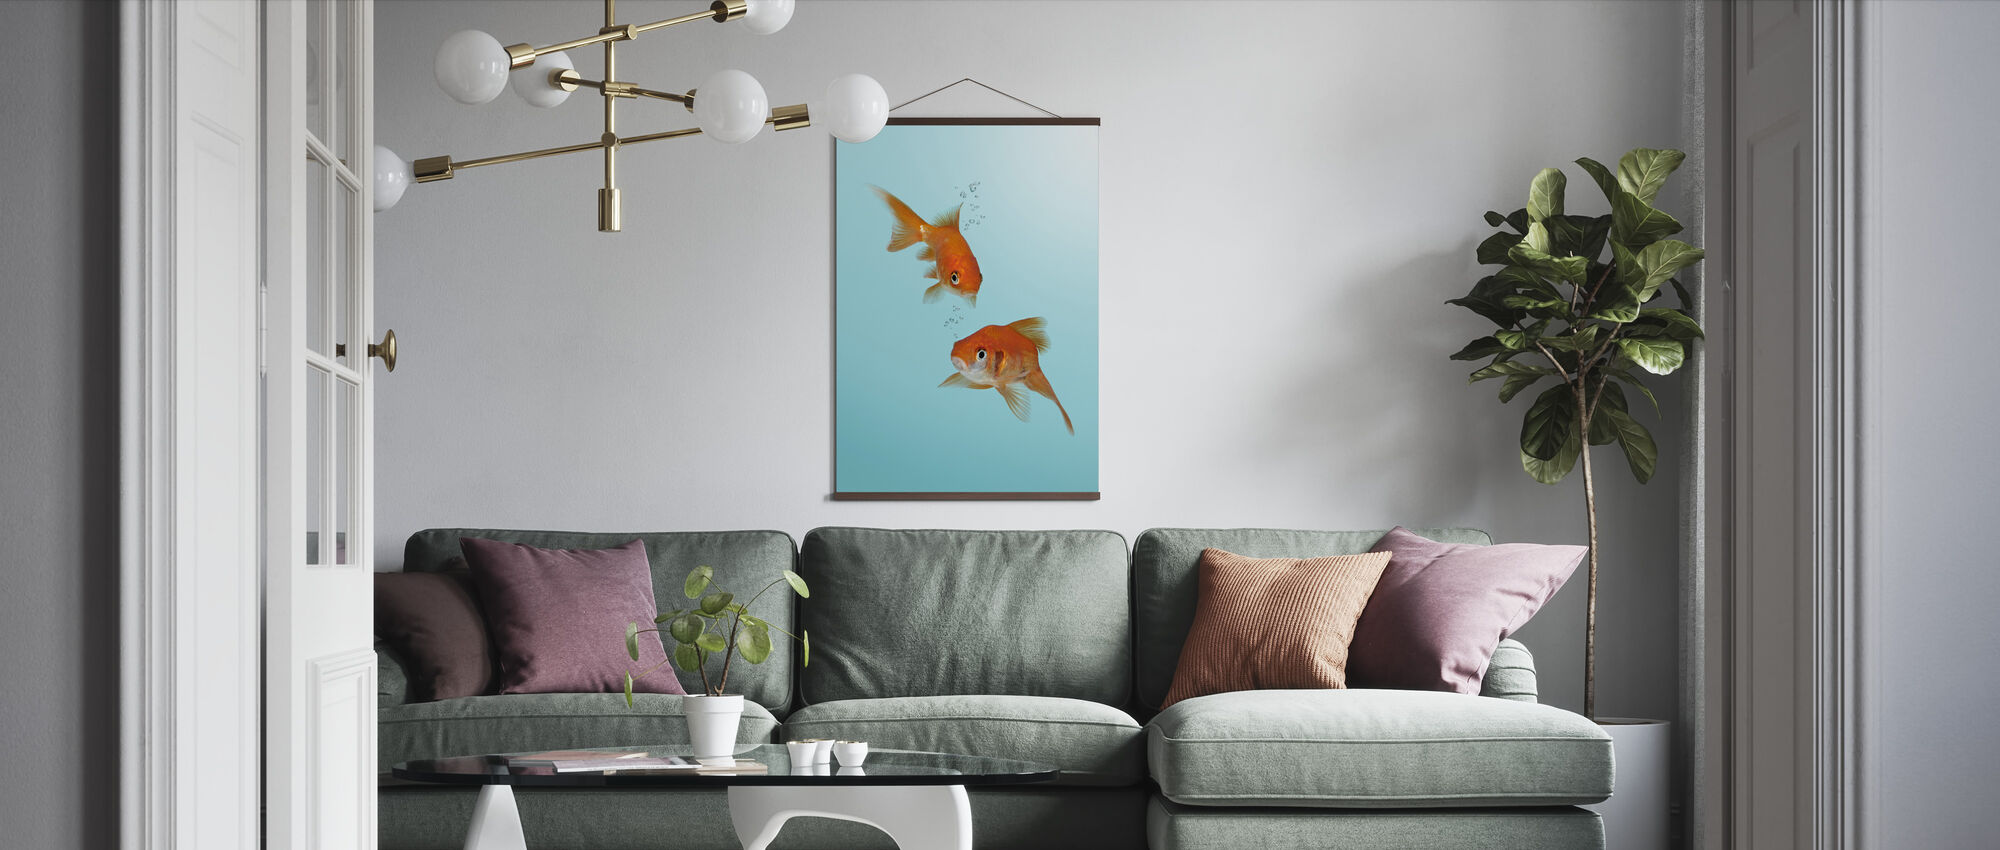 A Pair of Goldfish - Poster - Living Room